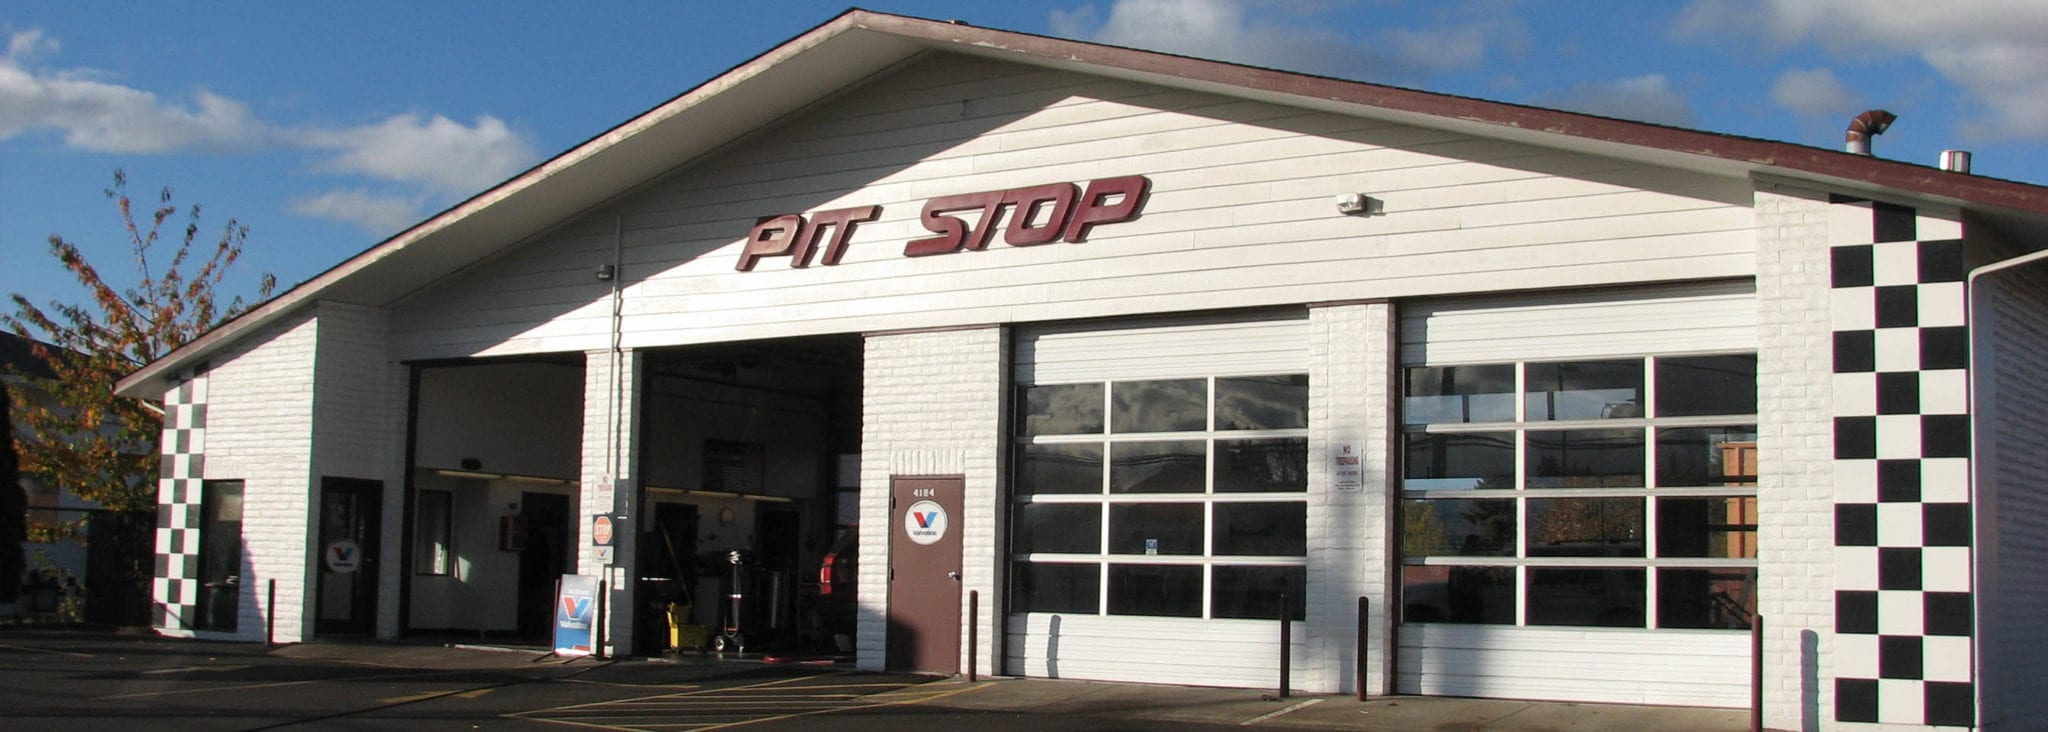 Pit Stop Springfield, Oregon